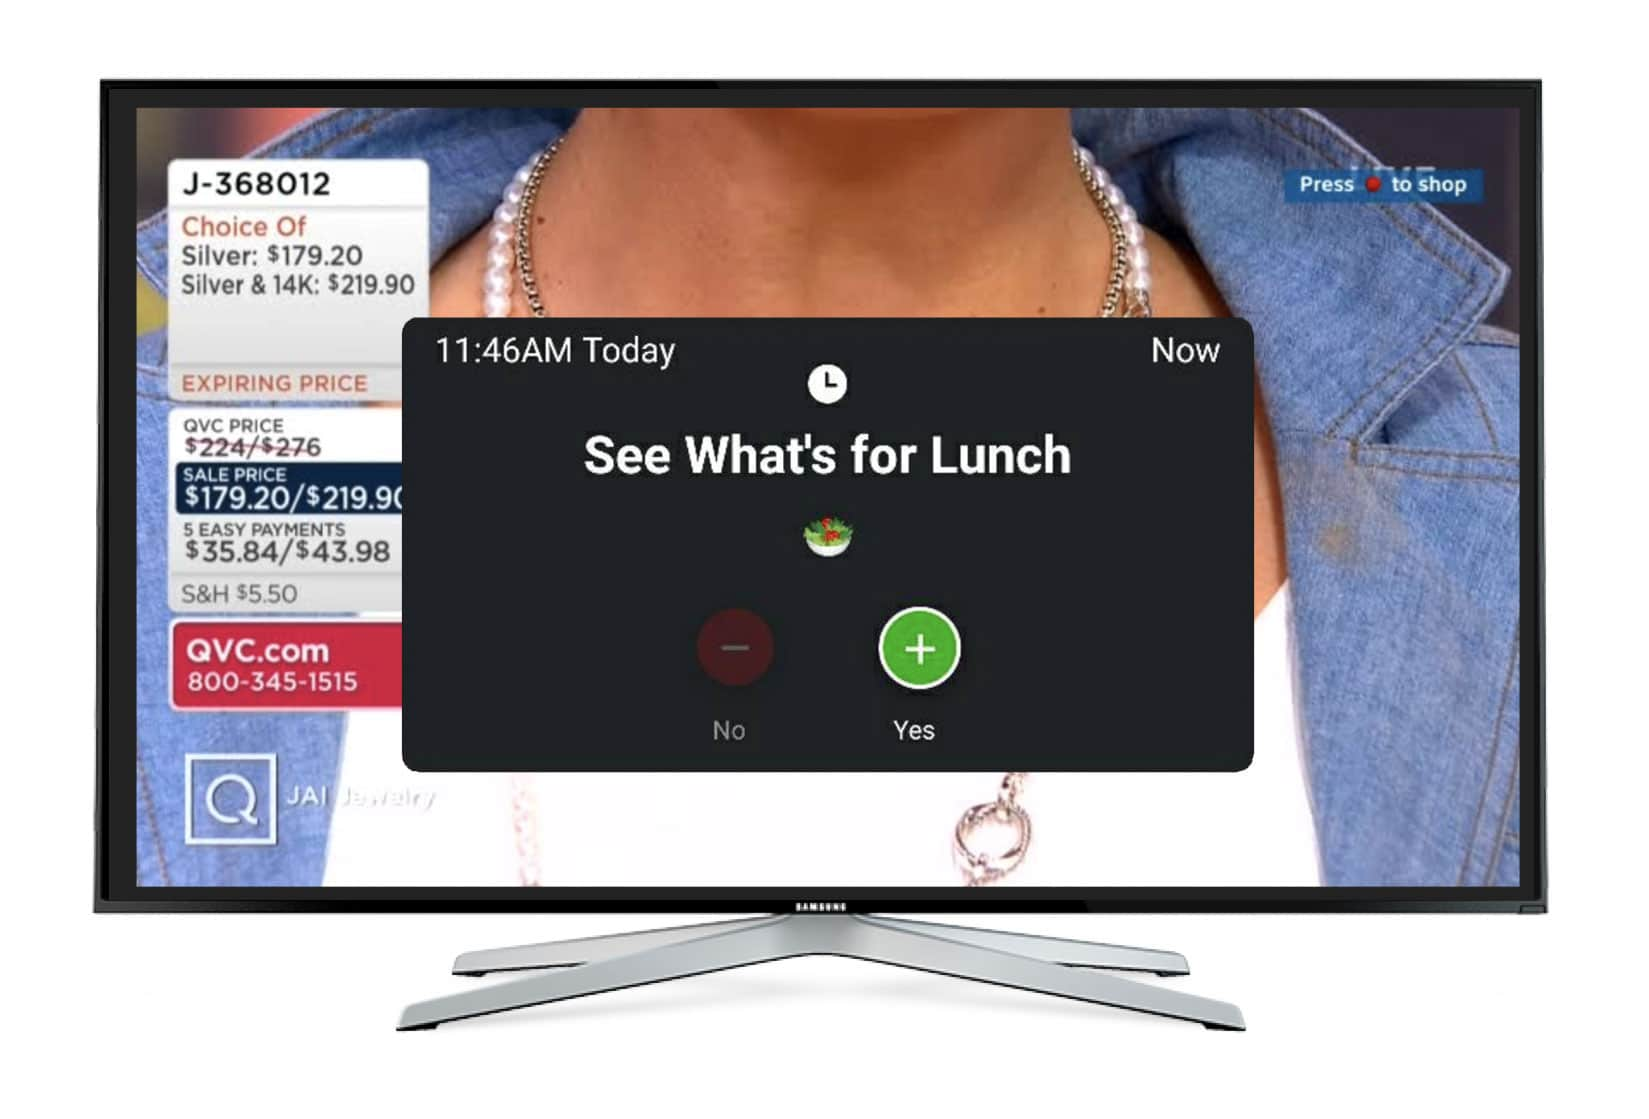 CAAVO TV-connected engagement system Enhances Communications with Assisted Living Patients - from Its All About Satellits 800-951-1979